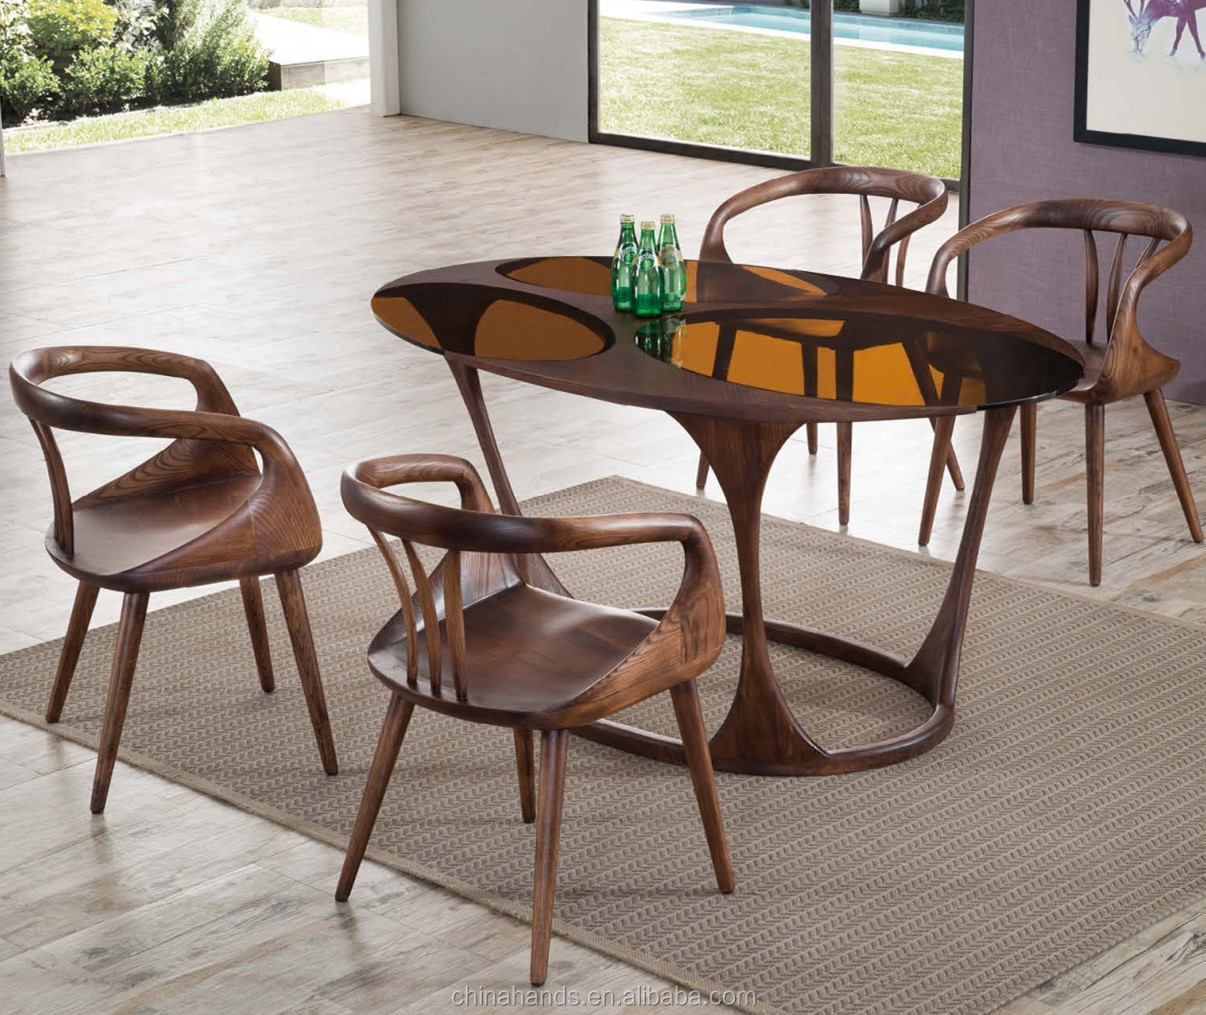 MA-ZM-823 Restaurant Furniture Restaurant Dining Set Restaurant Table and Chair